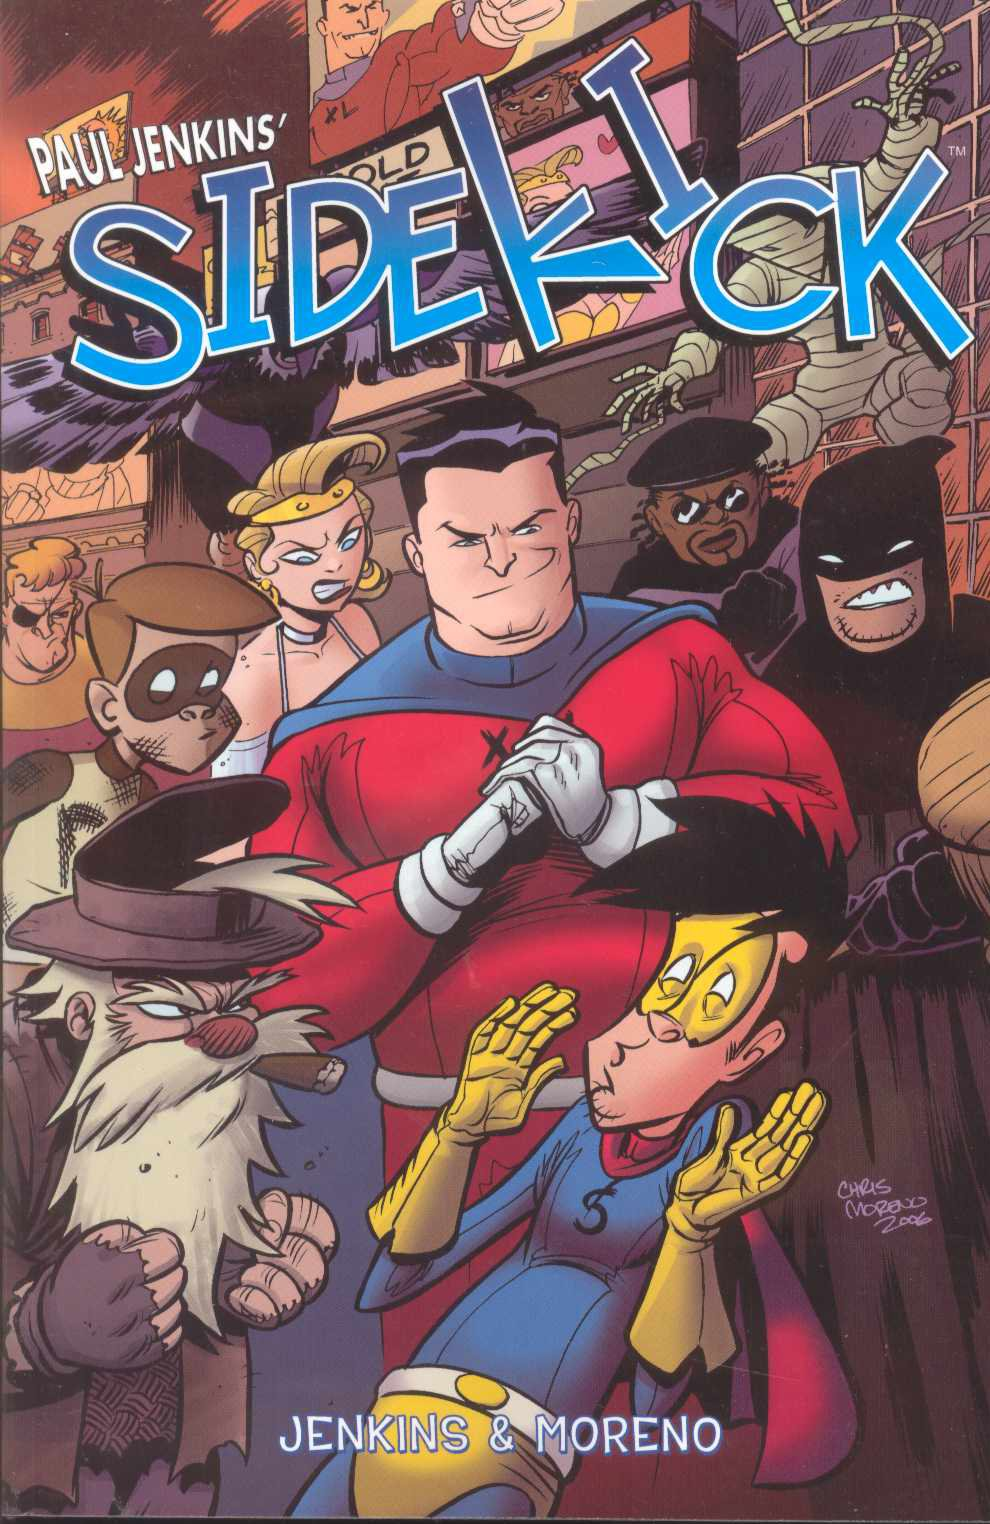 Read Online Paul Jenkins Sidekick Volume 1 (v. 1) pdf epub